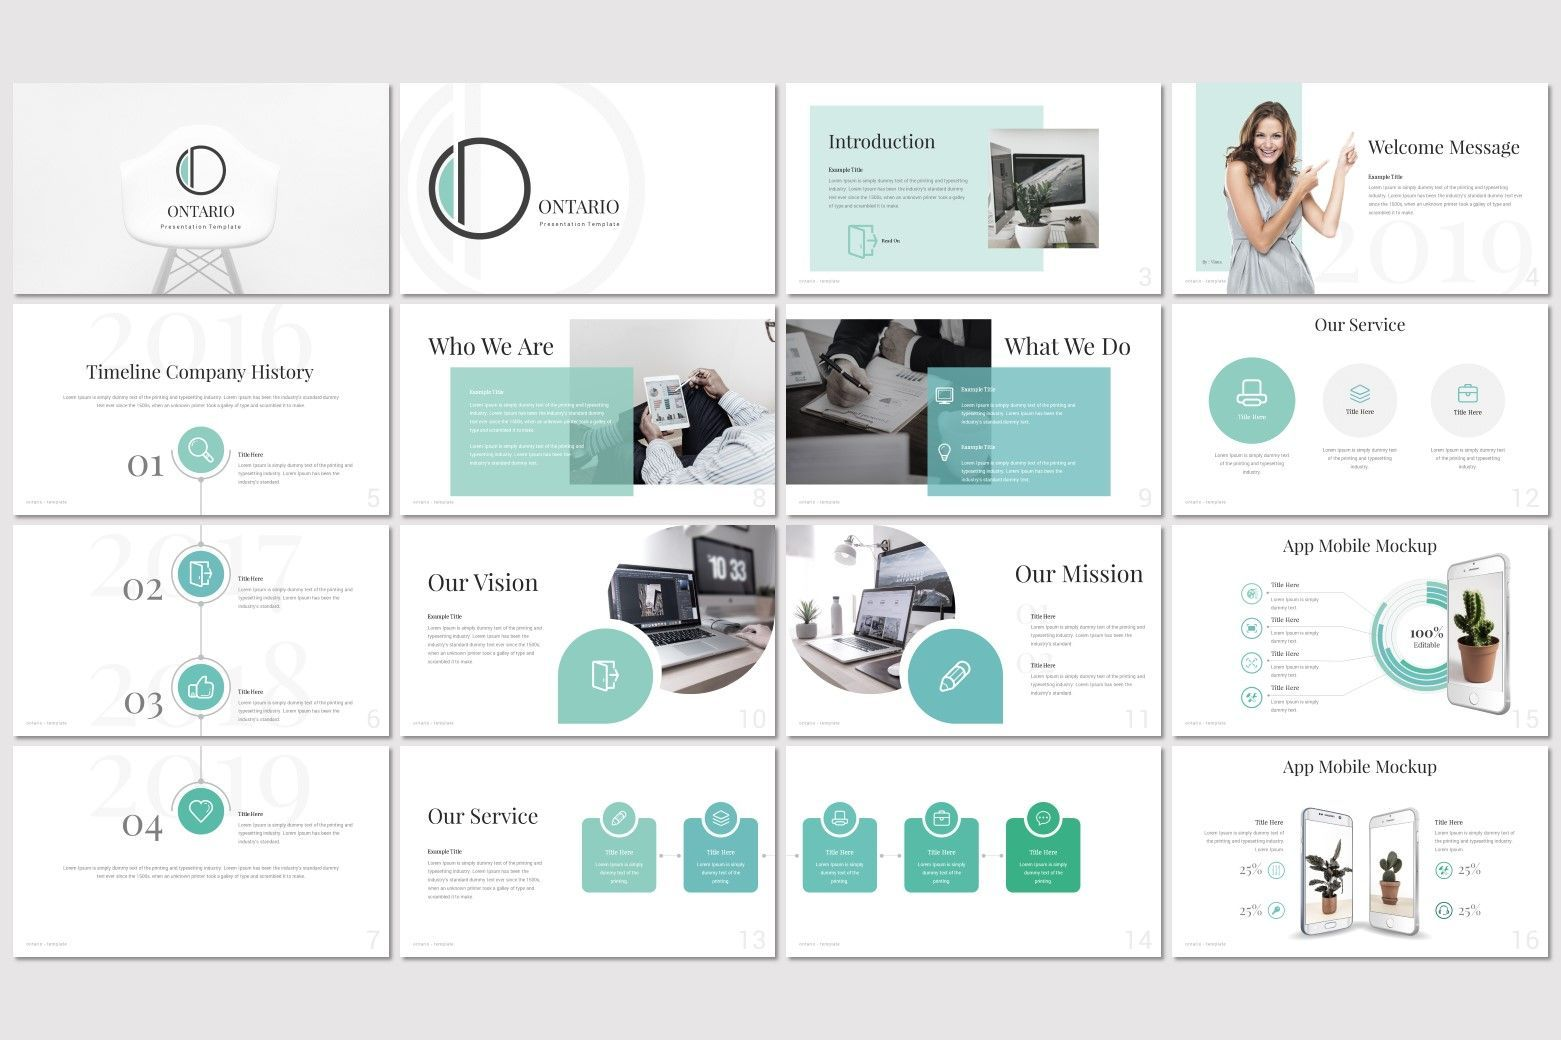 Ontario - PowerPoint Template, Slide 2, 07214, Presentation Templates — PoweredTemplate.com